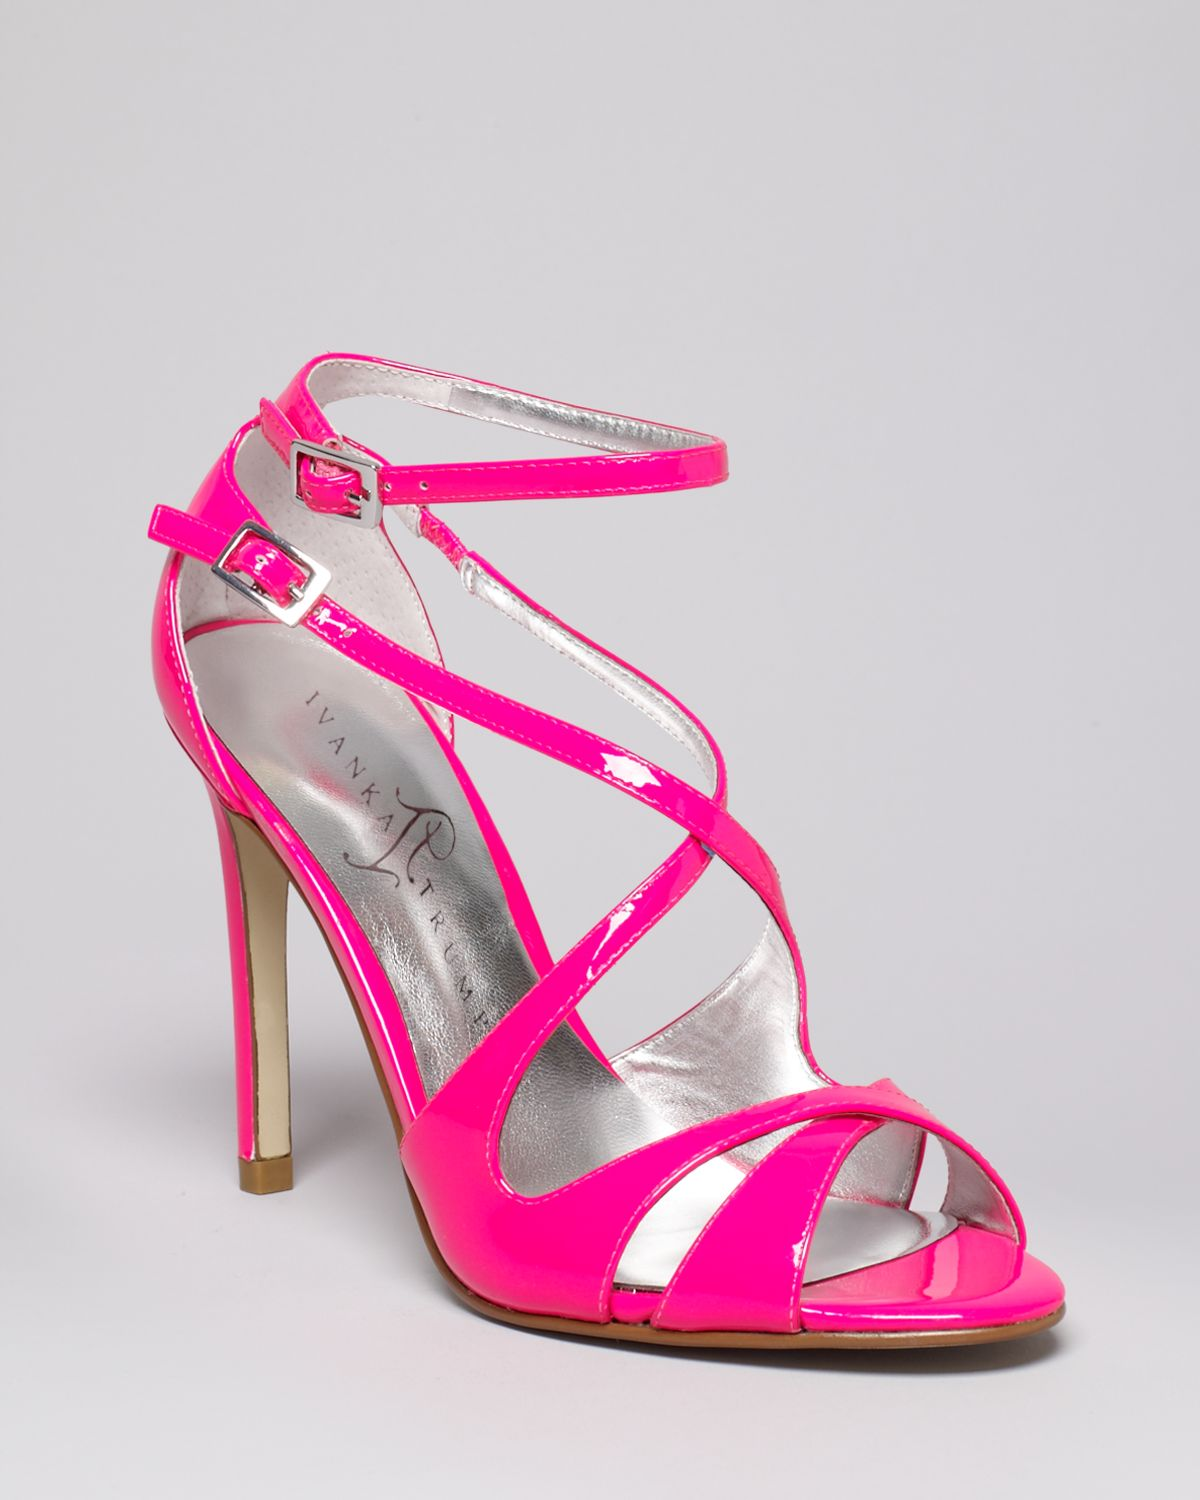 90ebdb770bca Lyst - Ivanka Trump Helice High Heel Strappy Sandals in Pink